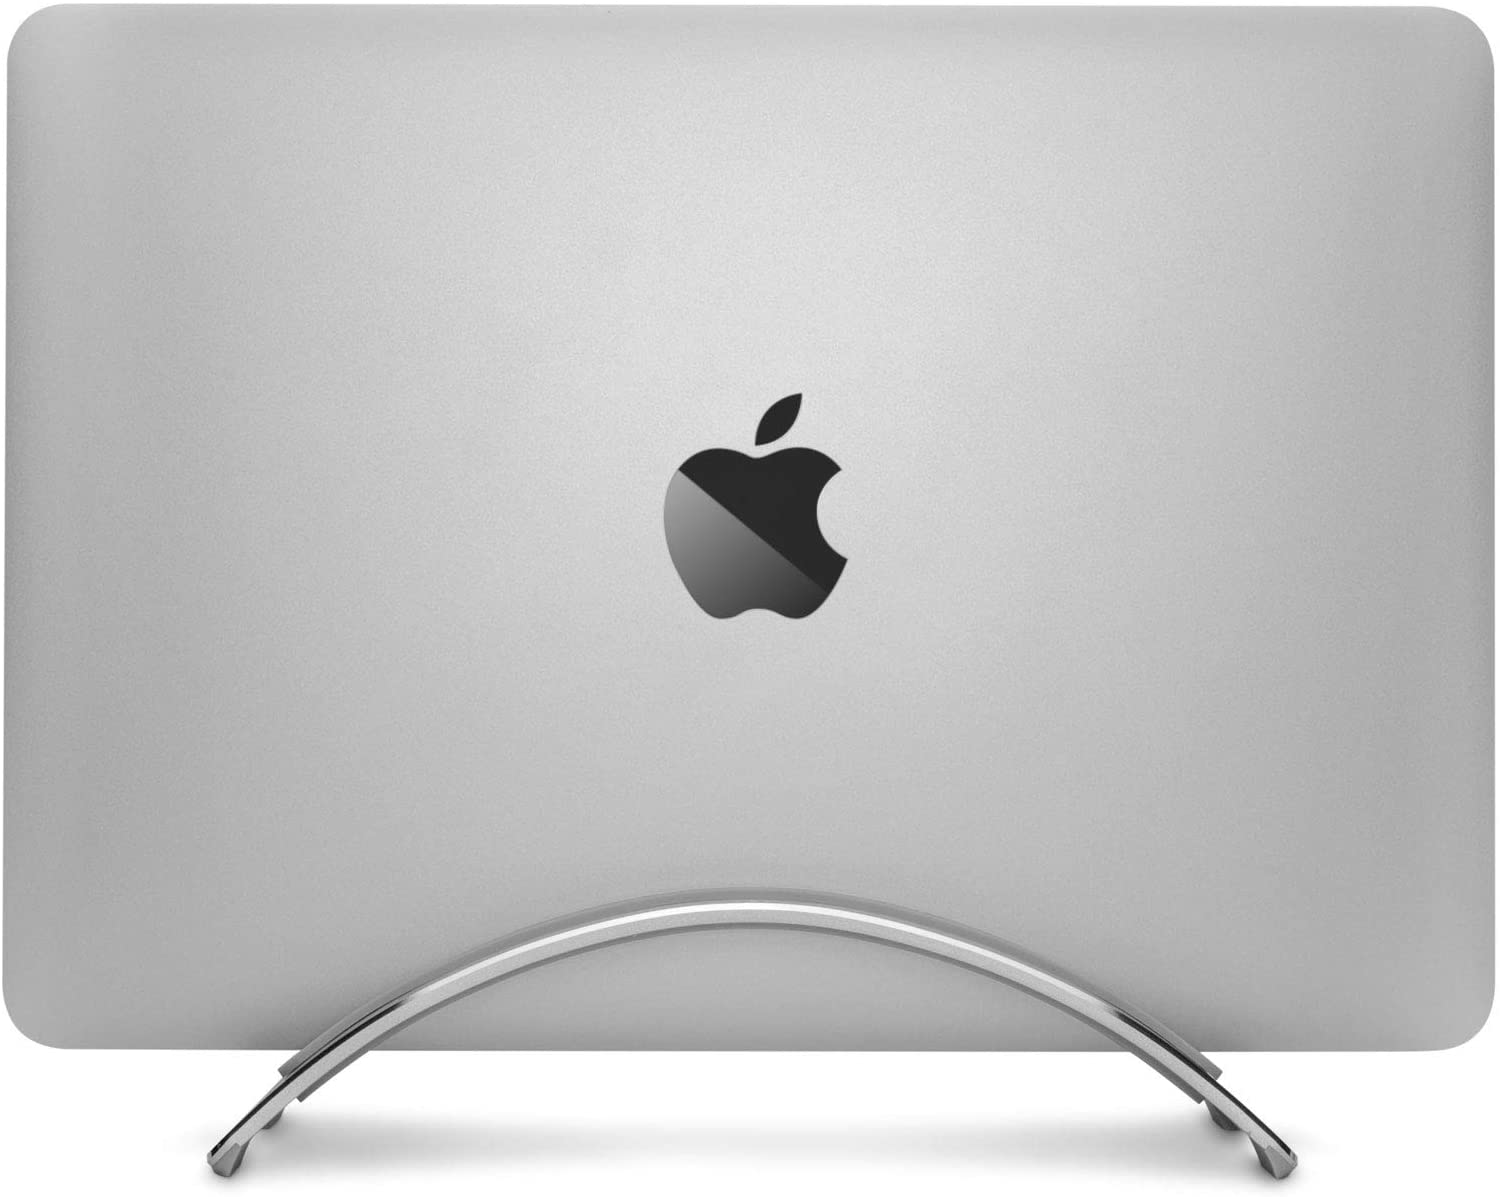 soporte en vertical macbook Twelve South BookArc plateado